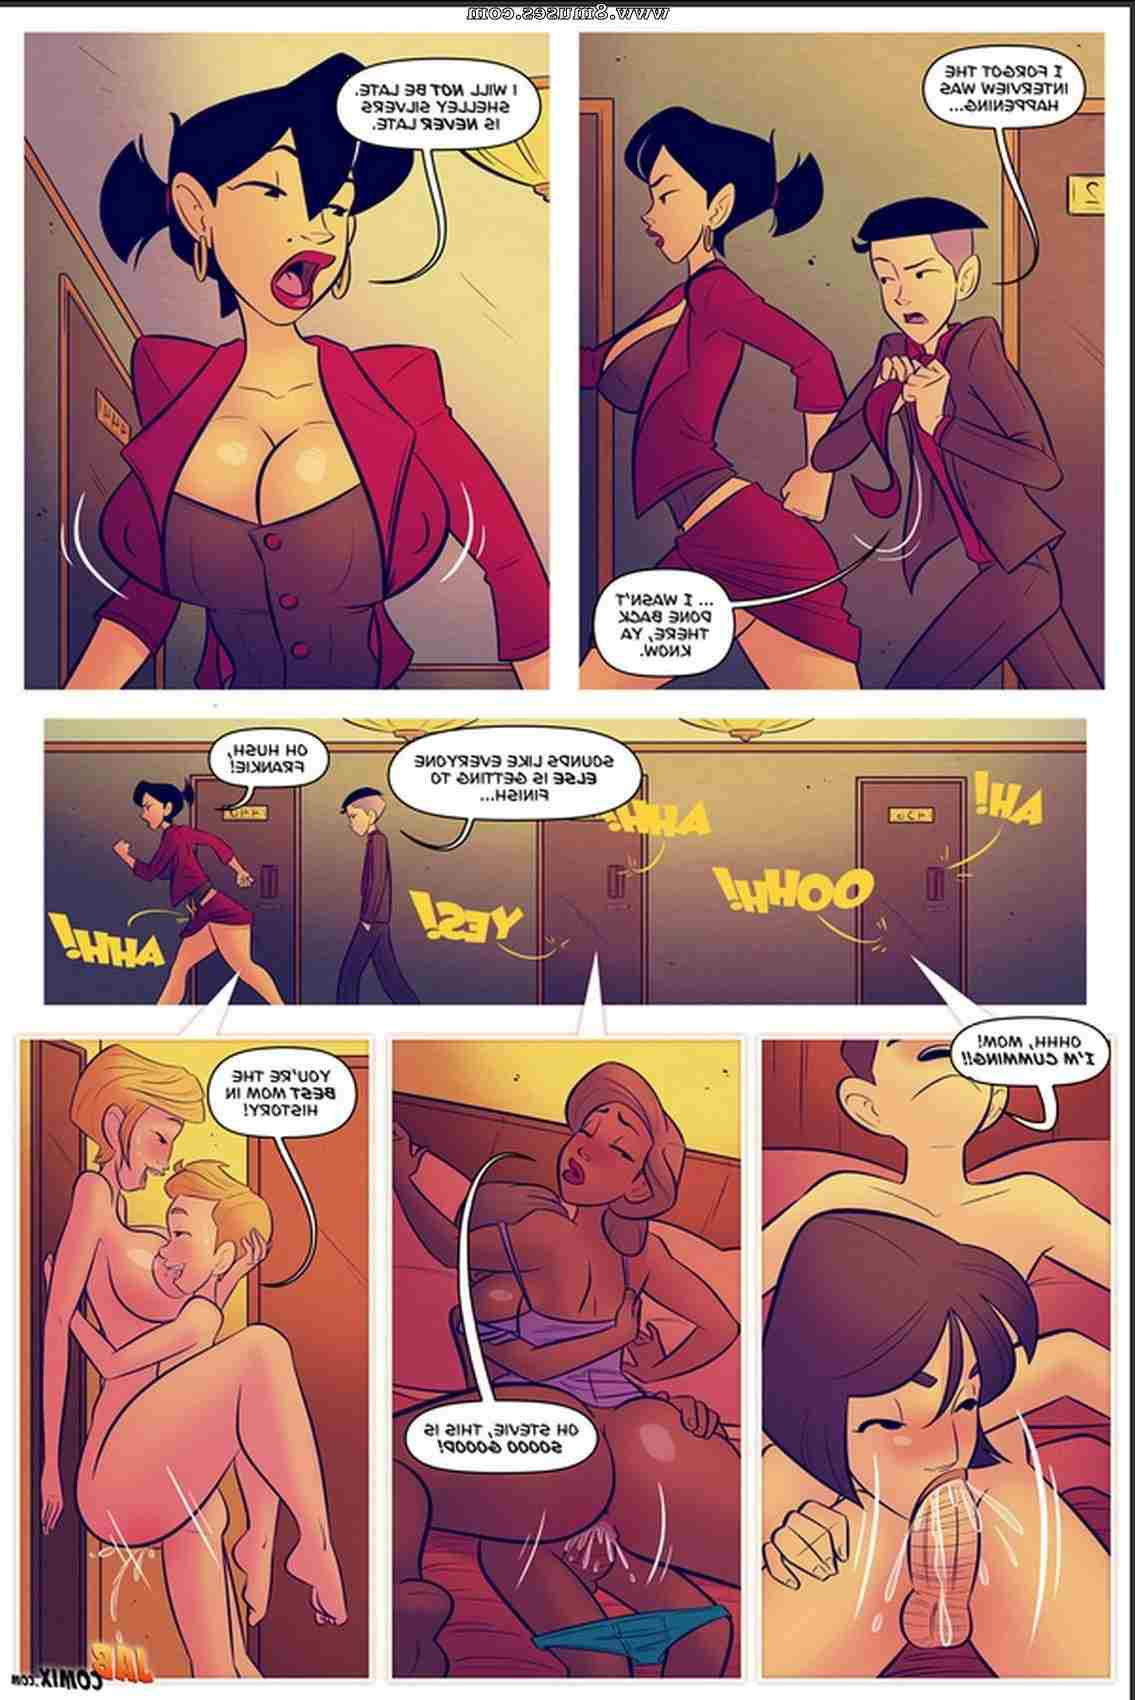 JAB-Comics/My-Mom-The-Book-Tour-Star My_Mom_-_The_Book_Tour_Star__8muses_-_Sex_and_Porn_Comics_14.jpg